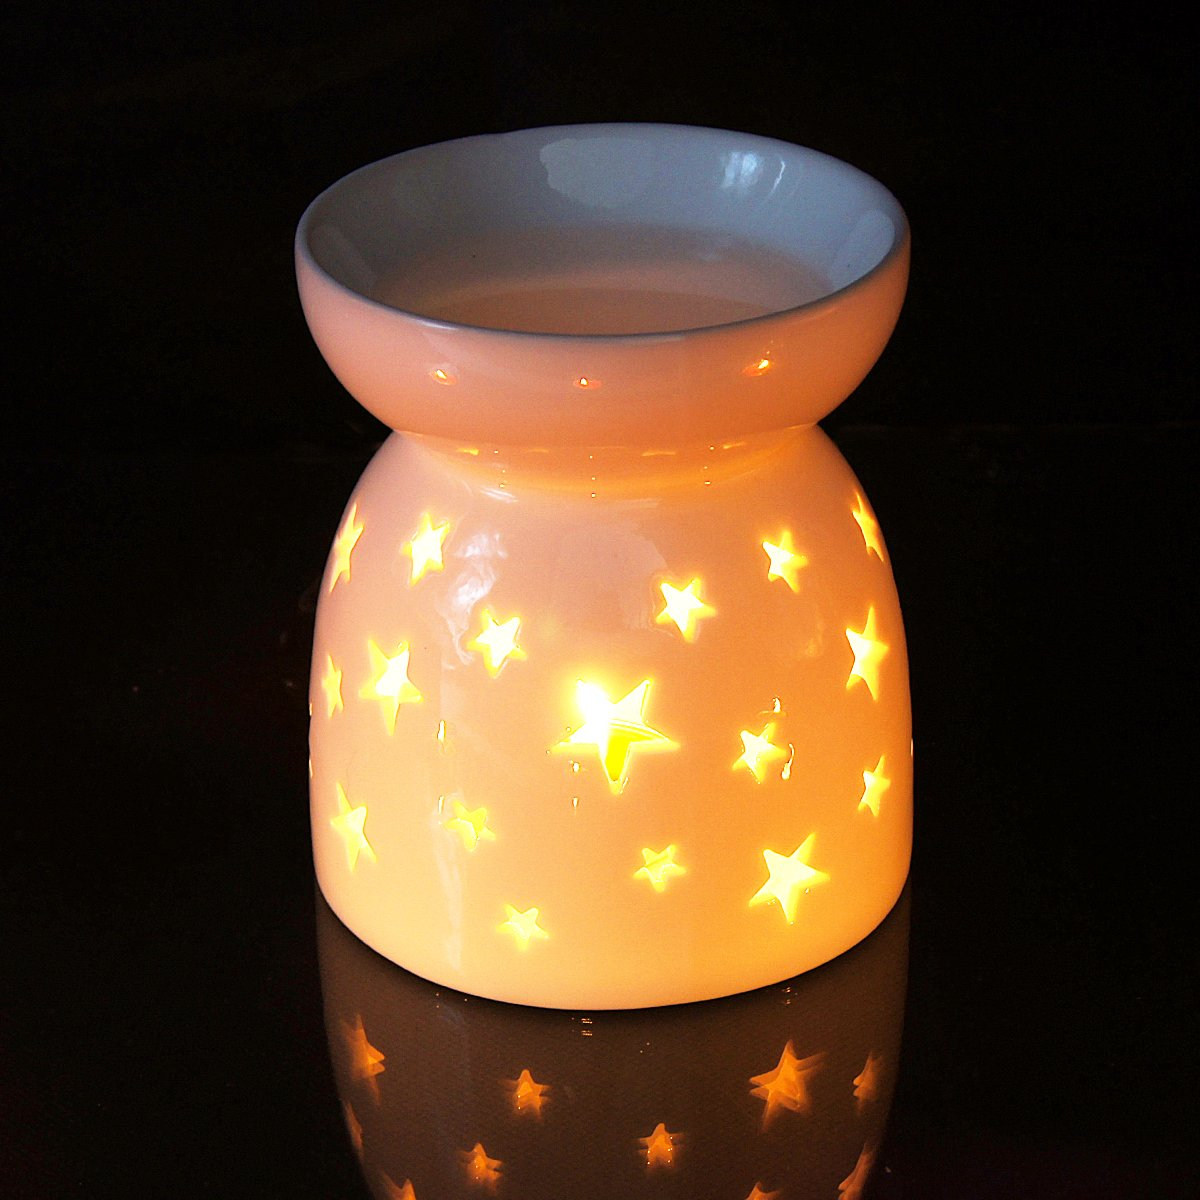 Ivenf Ceramic Essential Oil Incense Tart Tealight Candle Burner Diffuser, Holiday Home Decoration Valentine, Cutout Stars